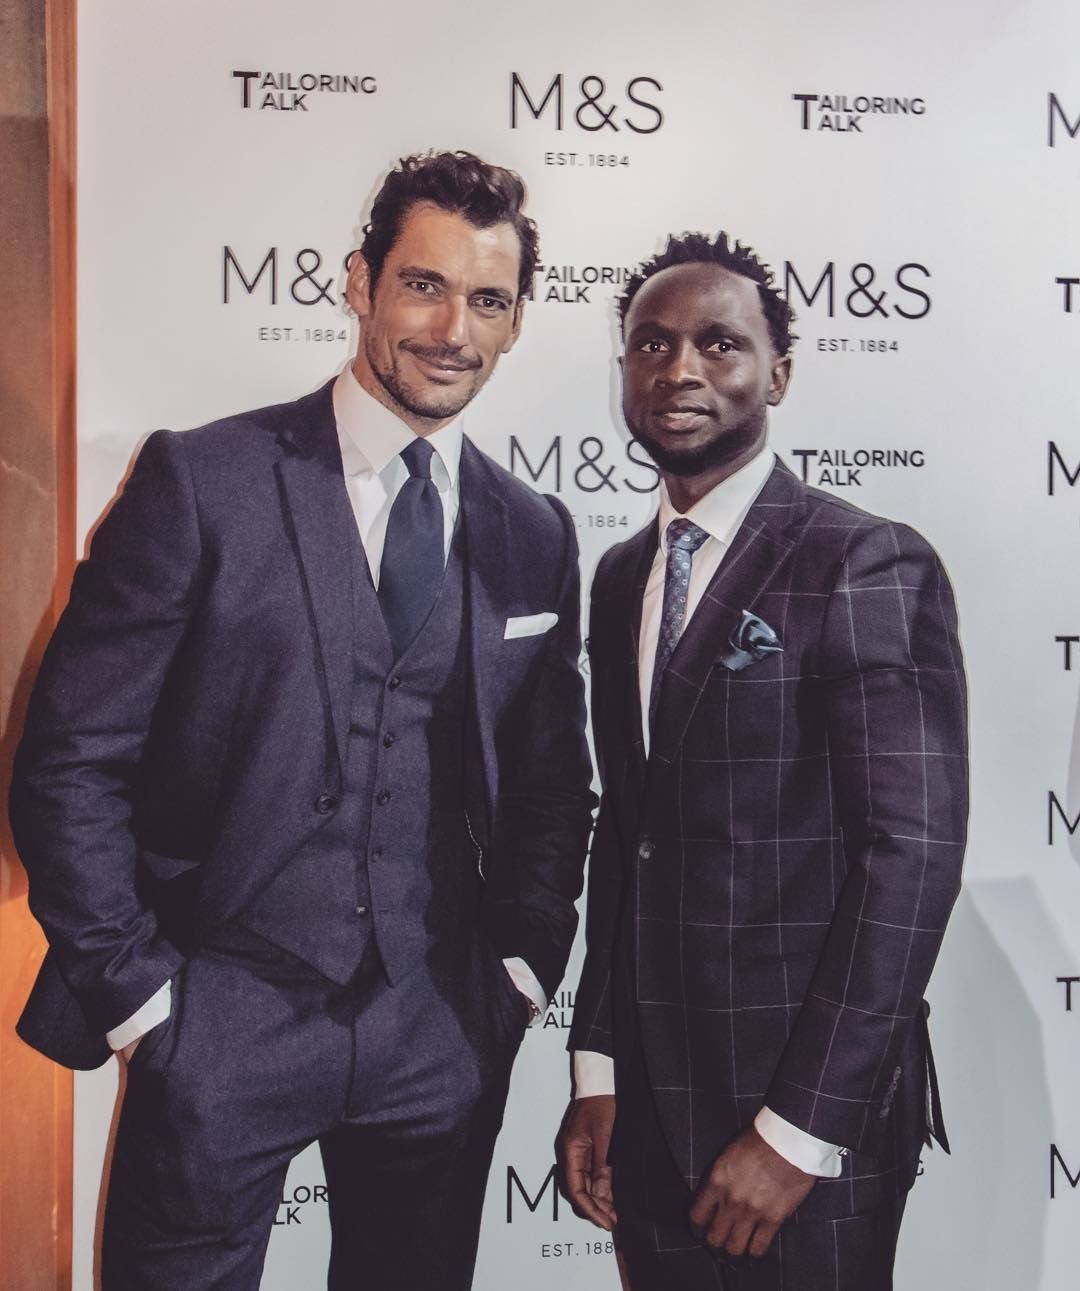 """164 Likes, 20 Comments - Cuts for him (@cutsforhim) on Instagram: """"About last night! It was an absolute honour to have been invited to @marksandspencer #TailoringTalk…"""""""